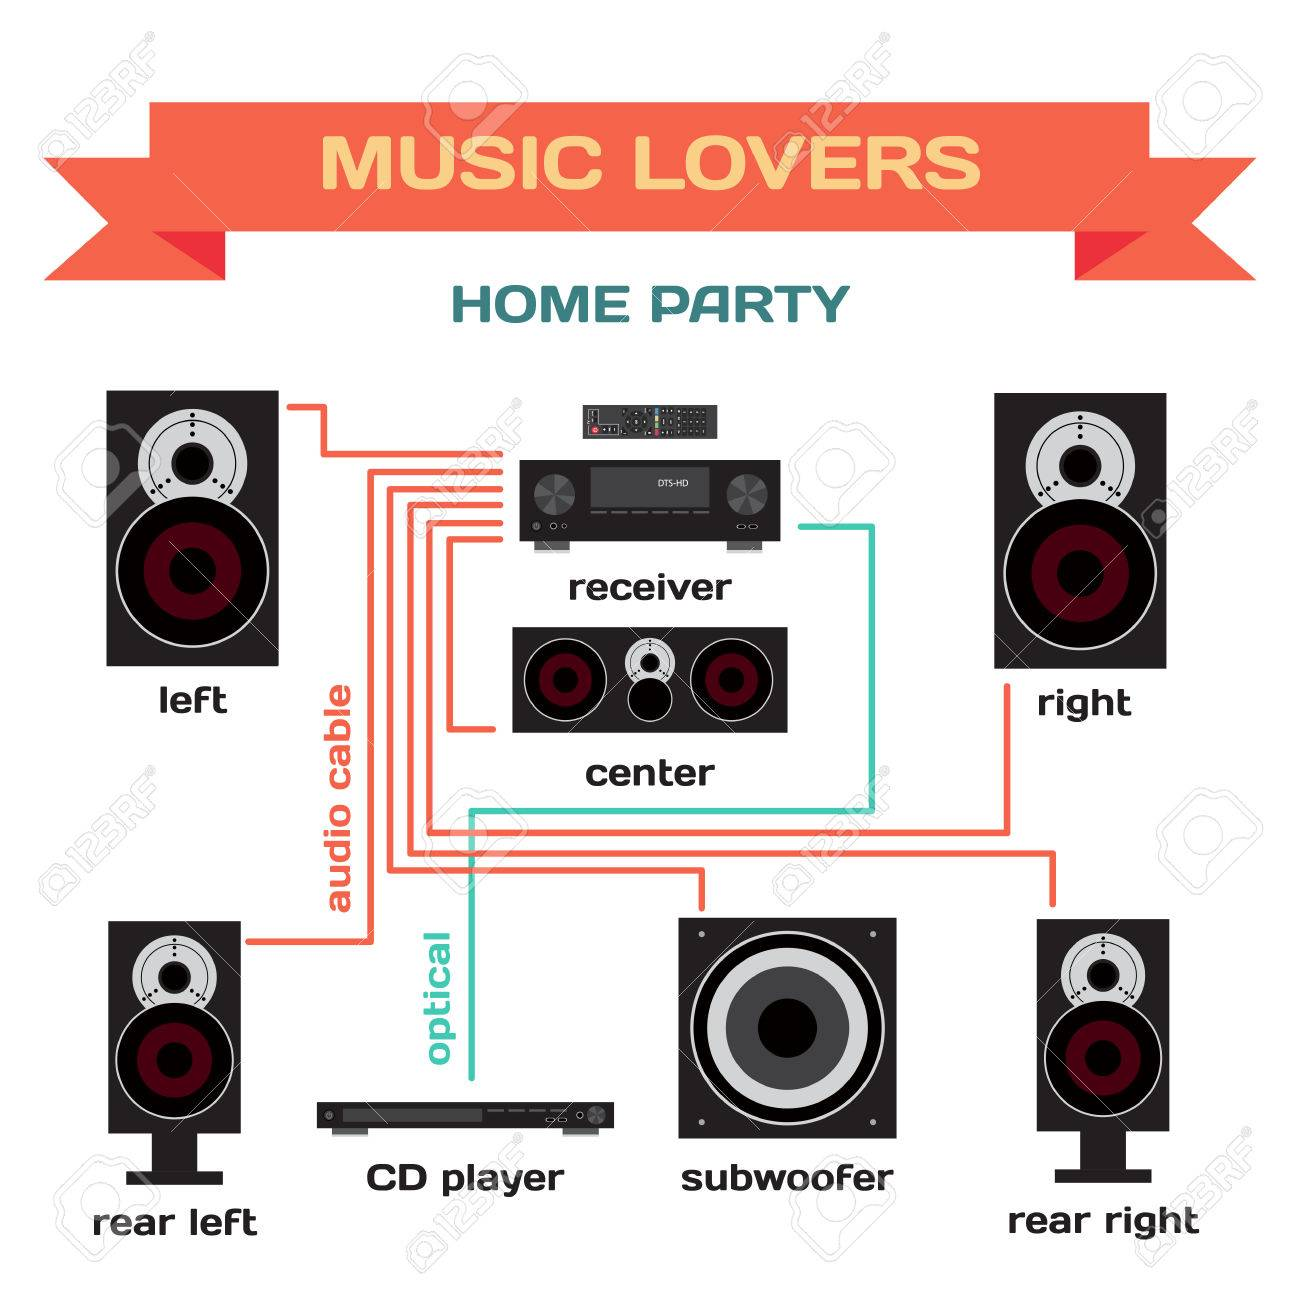 Fabulous Wiring A Music System For Home Party Flat Design Connect The Wiring Cloud Toolfoxcilixyz